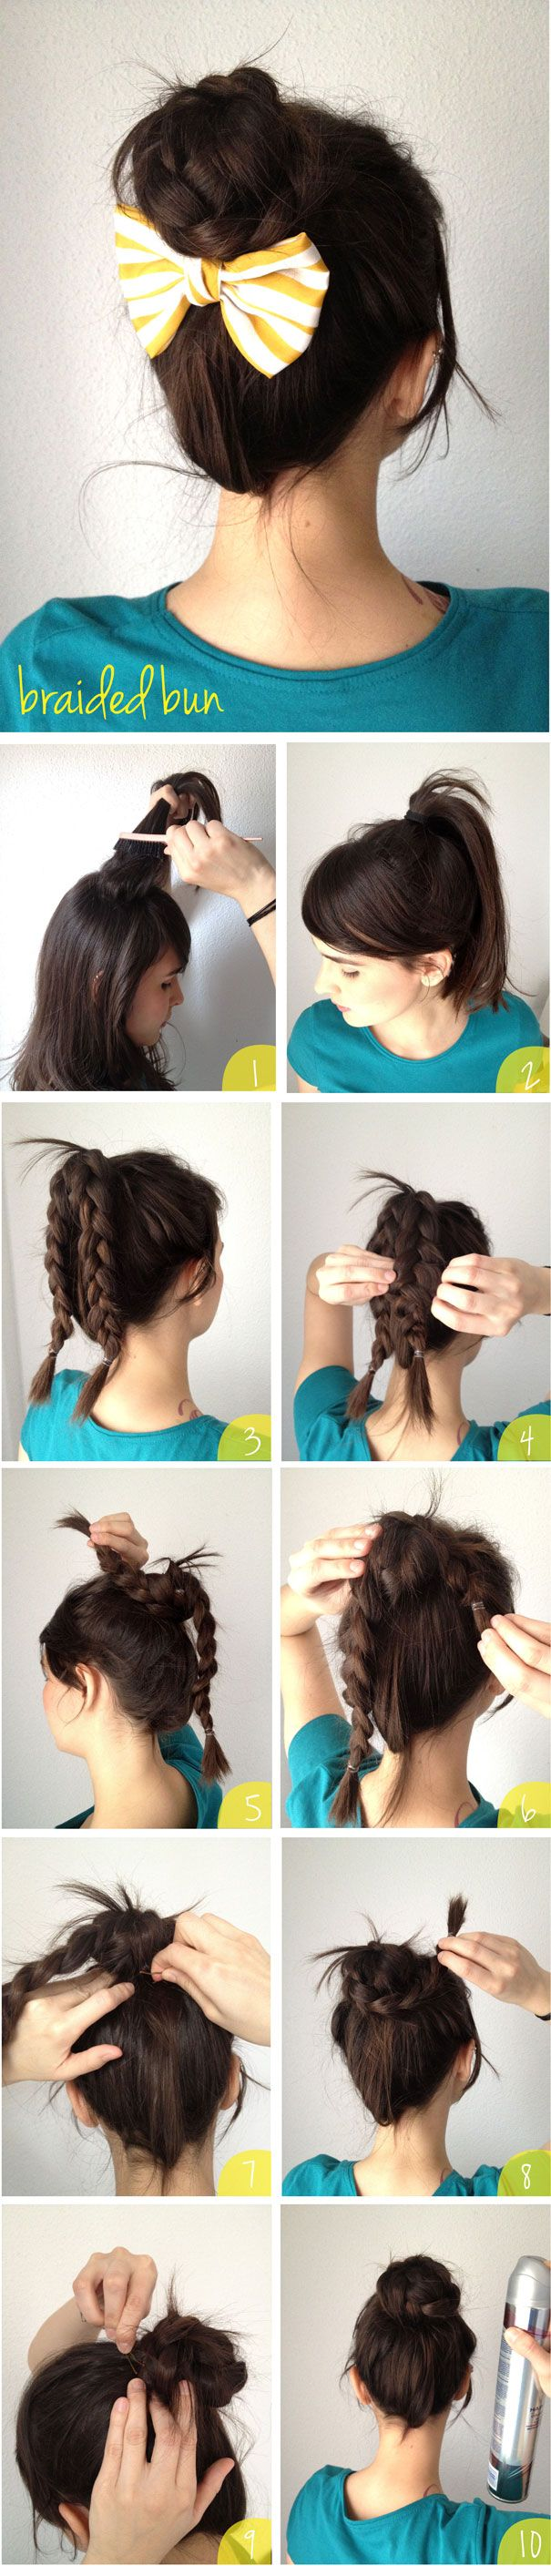 Pin by abby arellanes on hairstyles pinterest hair hair styles